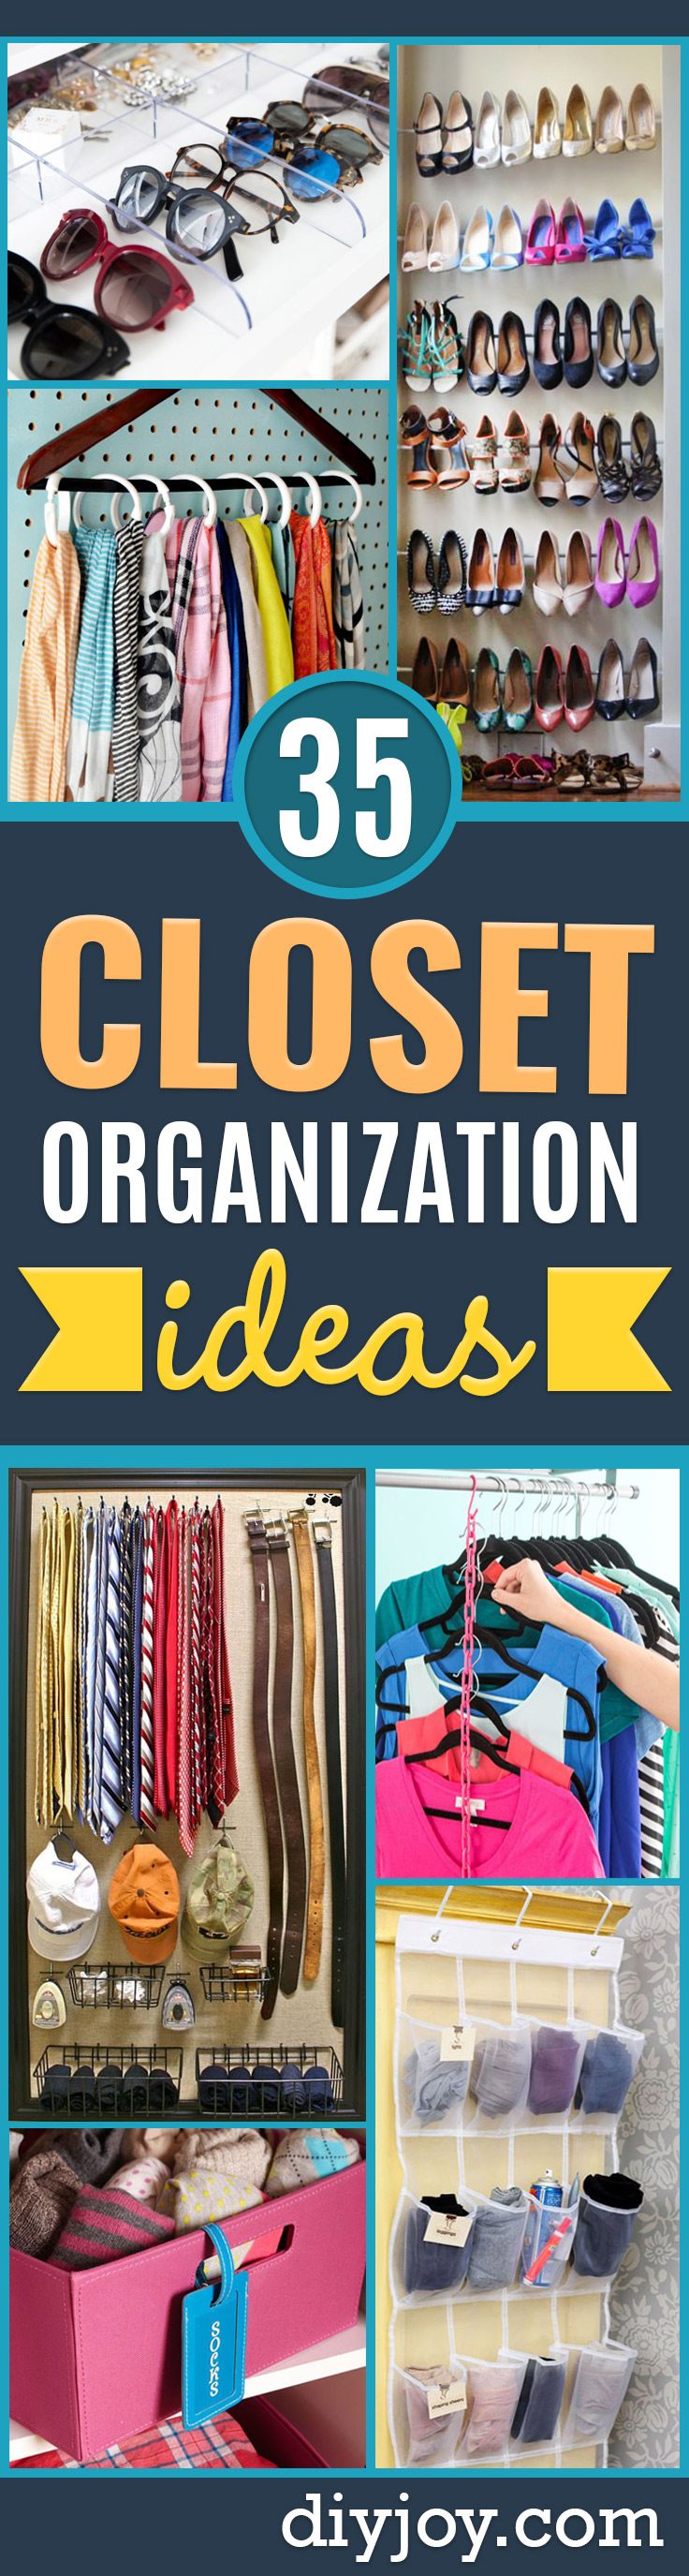 Closet Organization Ideas - DIY Closet Organizing Tutorials - Hacks, Tips and Tricks for Closets With Storage, Shoe Racks, Small Space Idea - Projects for Bedroom, Kids, Master, Walk in